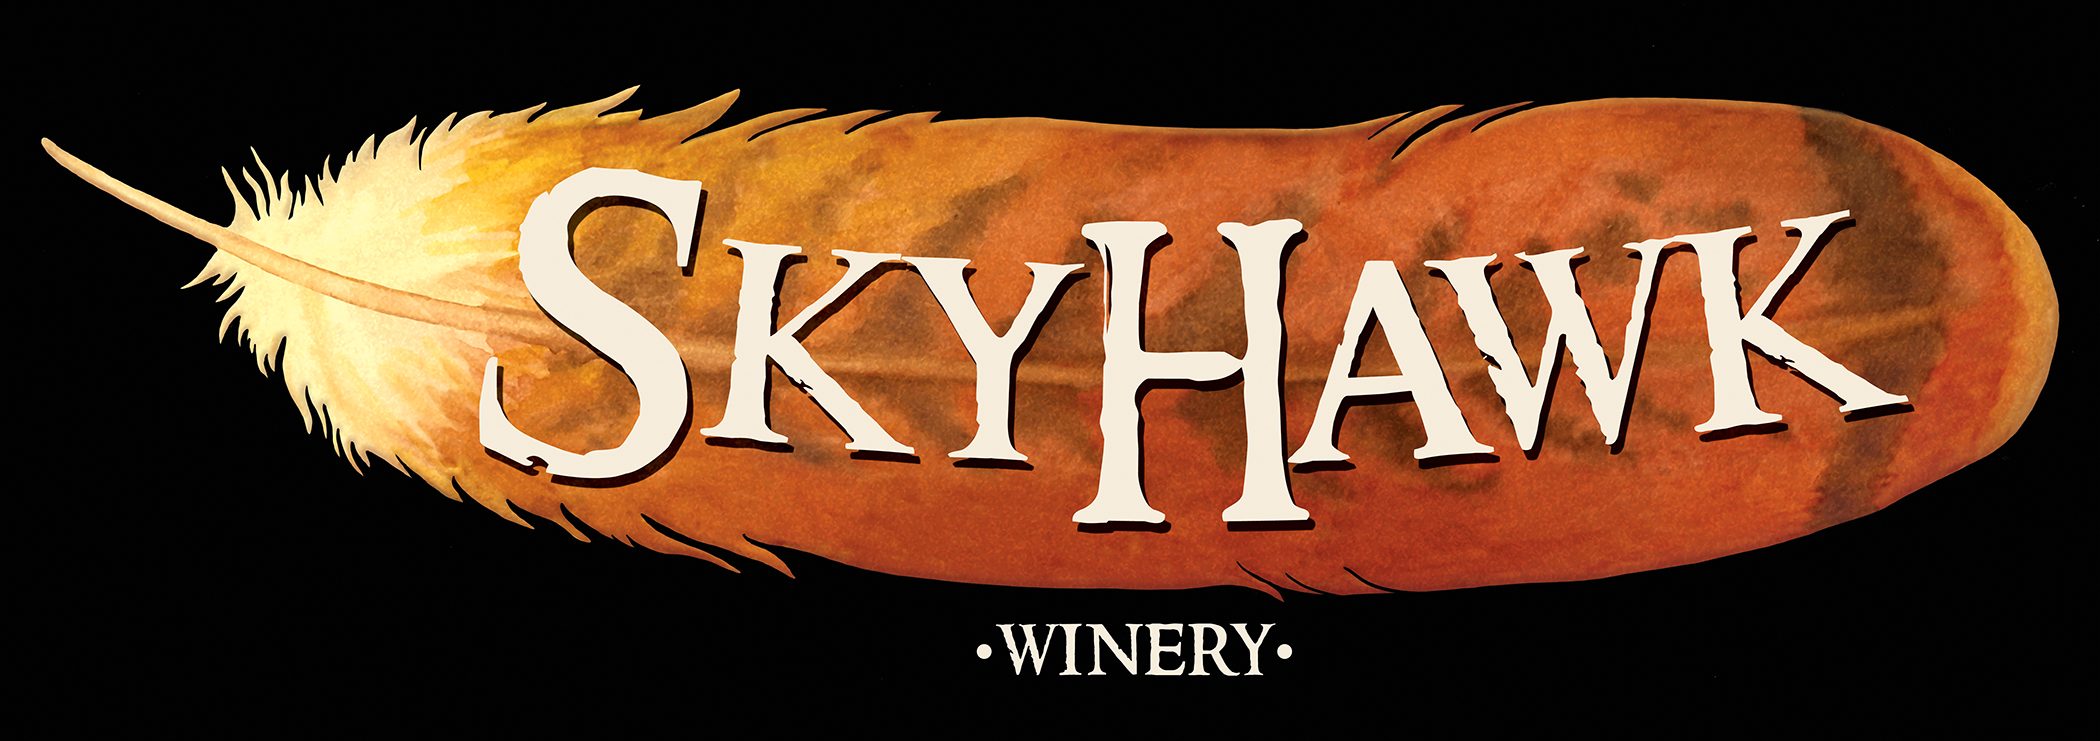 SKYHAWK Winery Logo